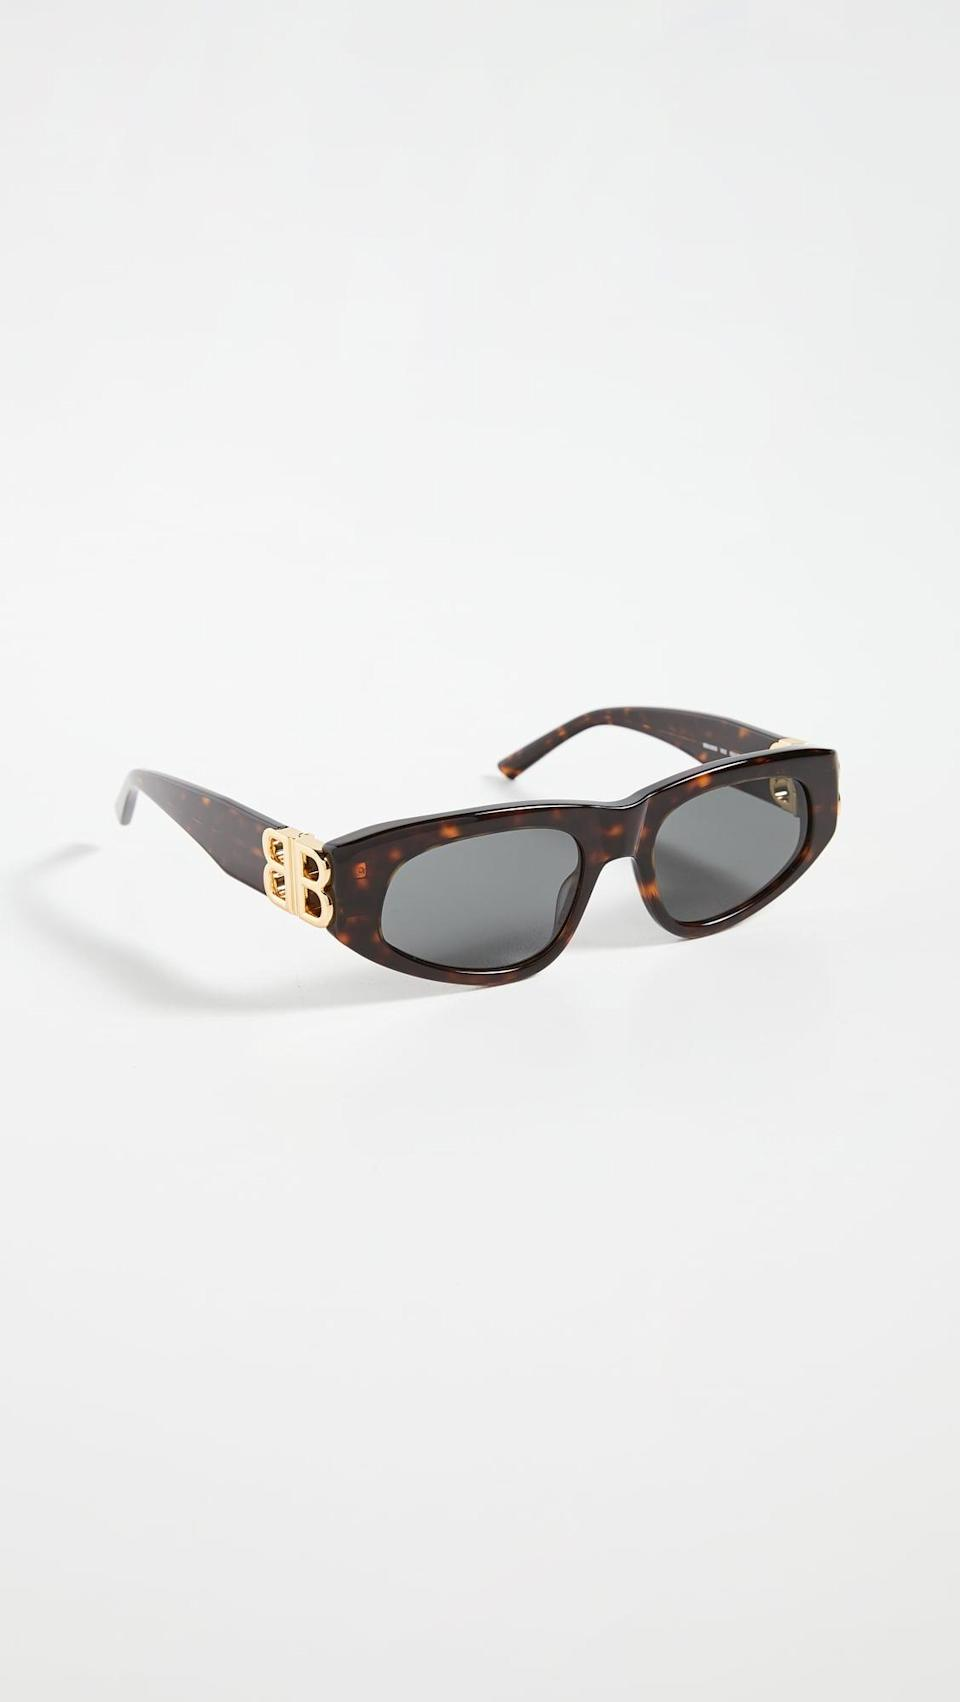 <p>These <span>Balenciaga Dynasty Vintage Inspired Oval Sunglasses</span> ($450) are a chic find.</p>